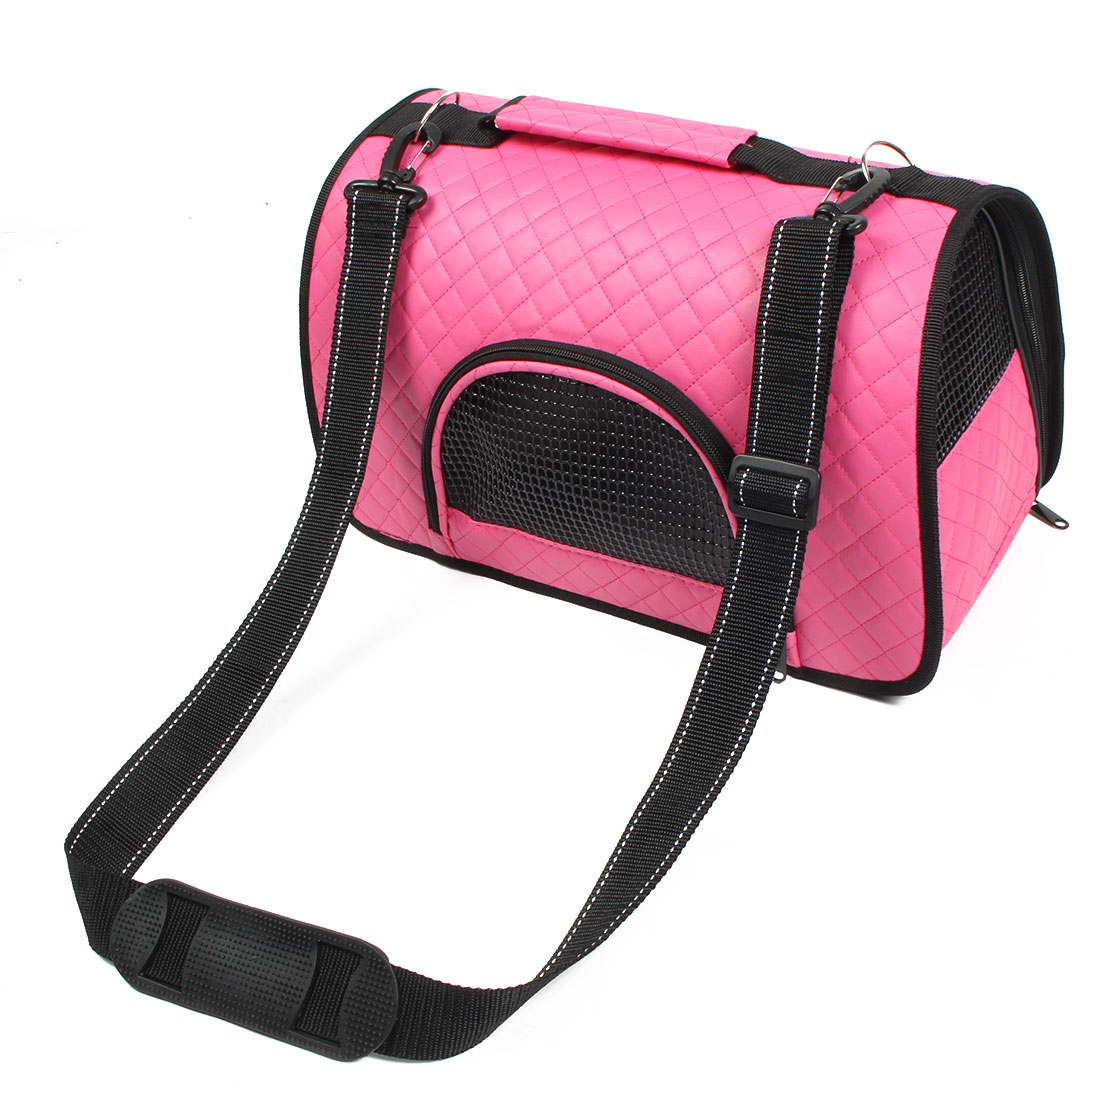 Travel Soft Faux Leather Meshy Zipper Pocket Pet Puppy Carrier Tote Bag Fuchsia